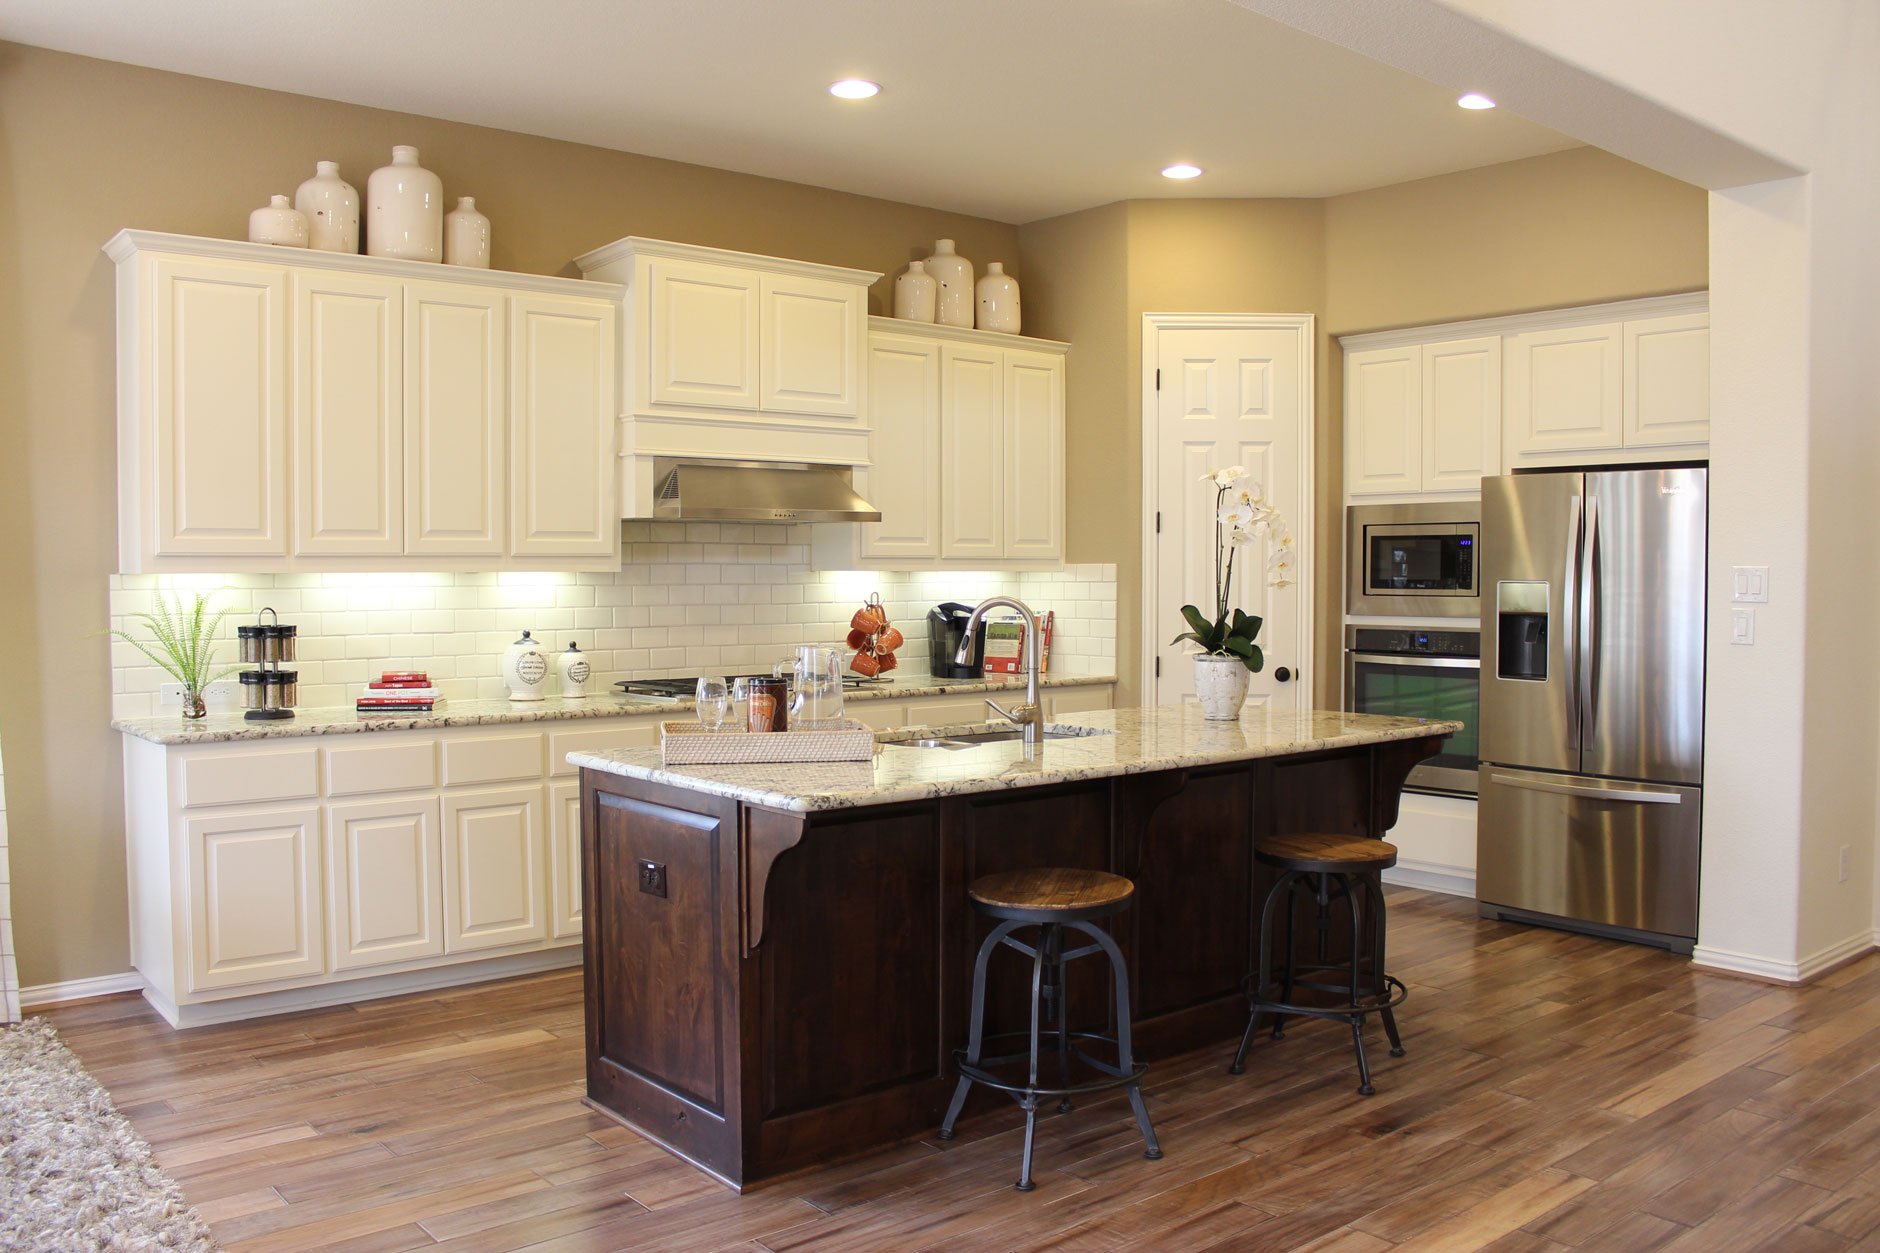 choose flooring compliments cabinet color kitchen floor cabinets Burrows Cabinets kitchen in knotty alder with Verona finish and appliance end panels